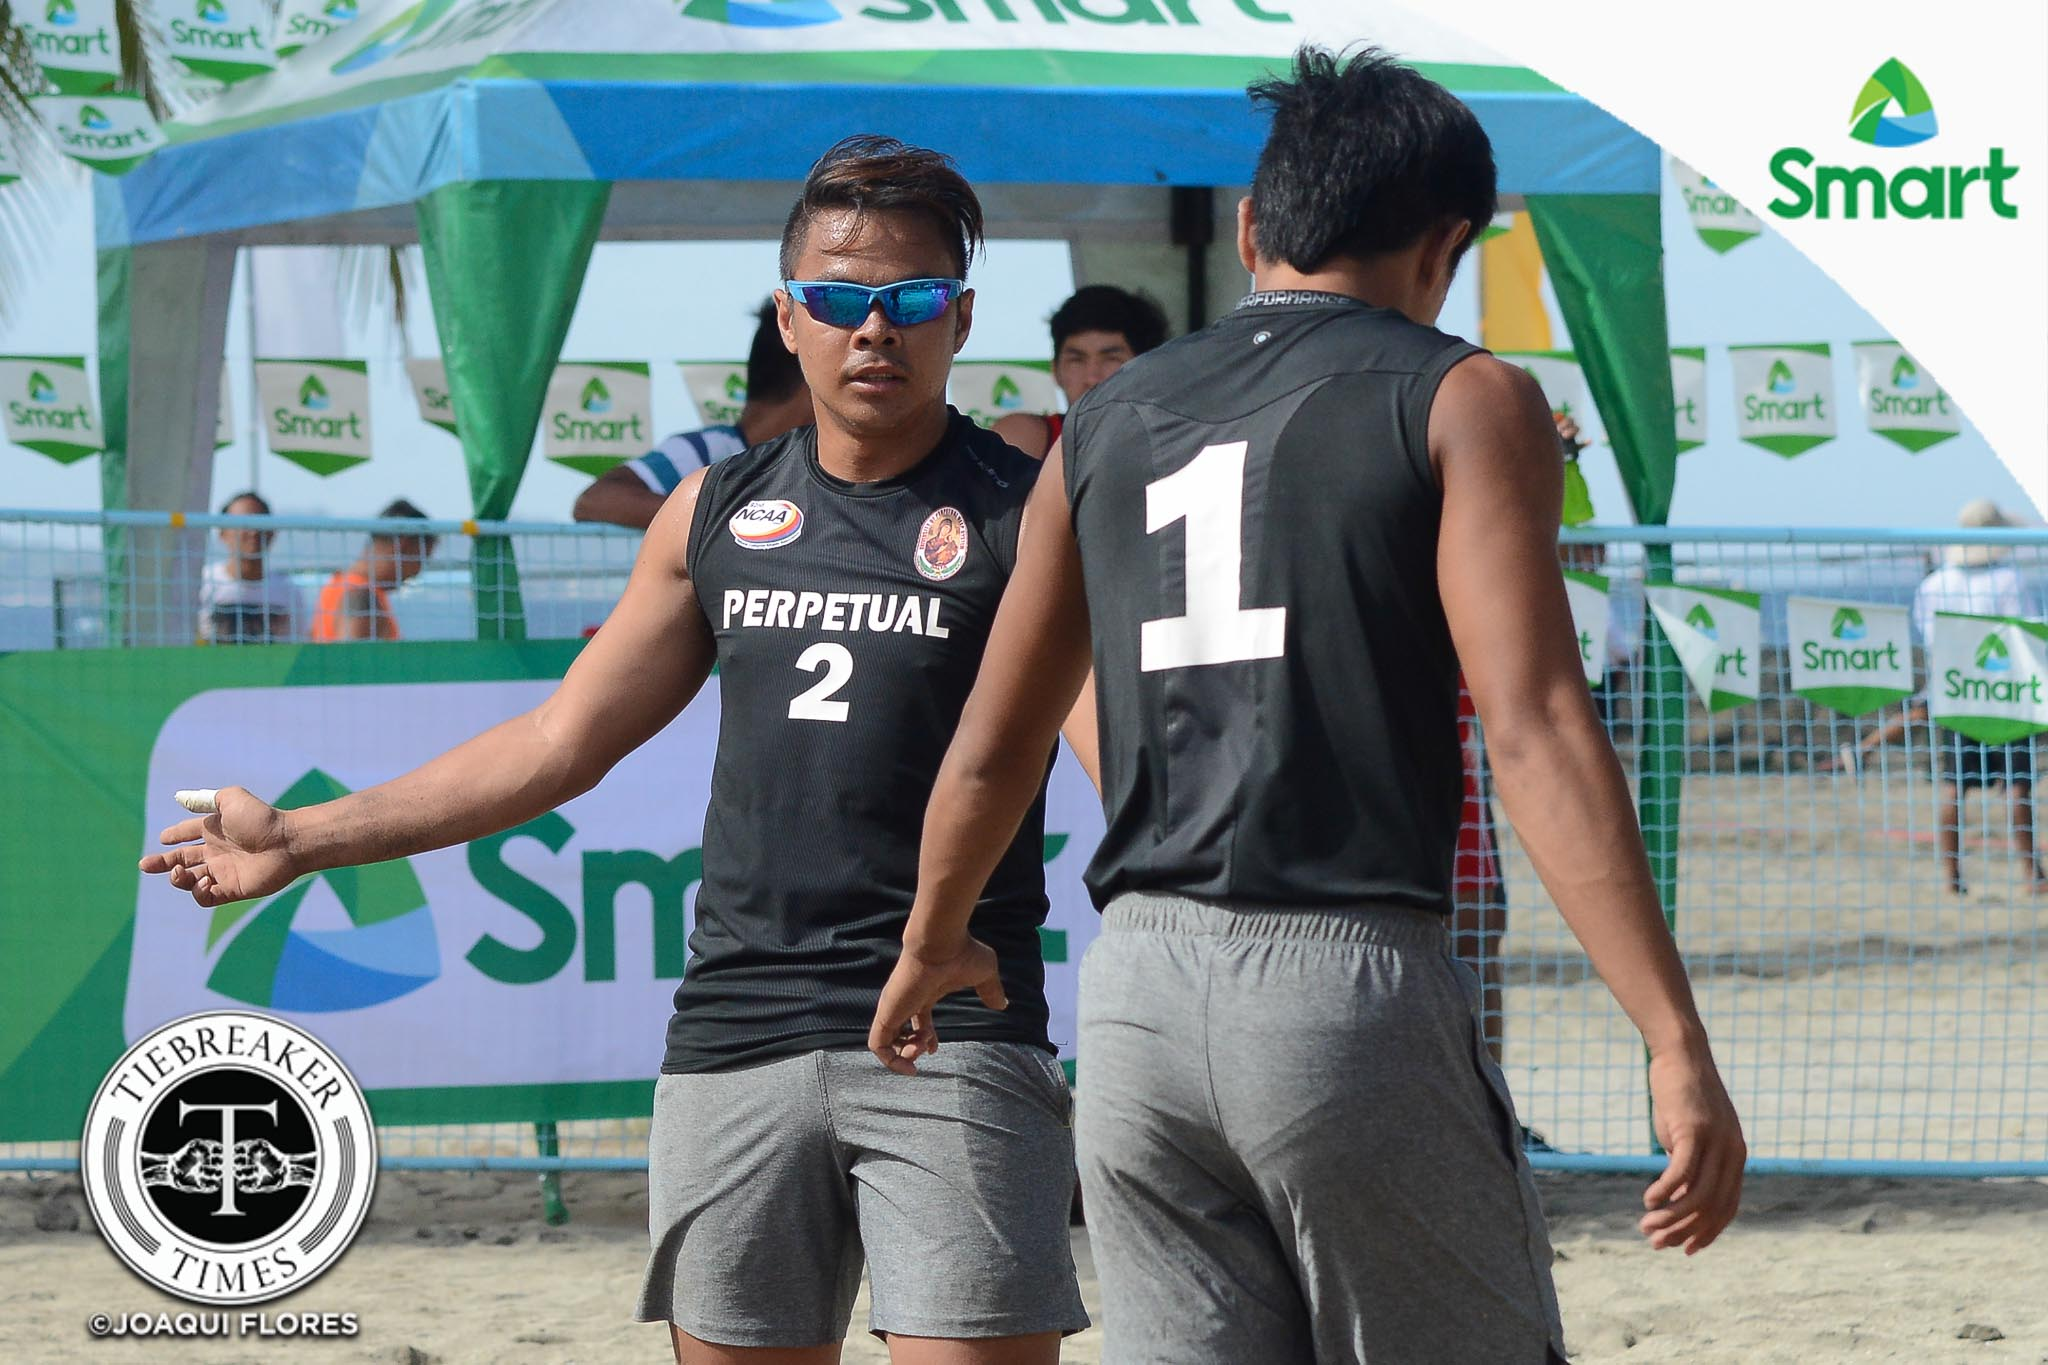 Philippine Sports News - Tiebreaker Times Perpetual's Taneo brothers eye redemption NCAA News UPHSD Volleyball  Rey Taneo Jr. Relan Taneo Perpetual Men's Volleyball NCAA Season 92 Men's Beach Volleyball NCAA Season 92